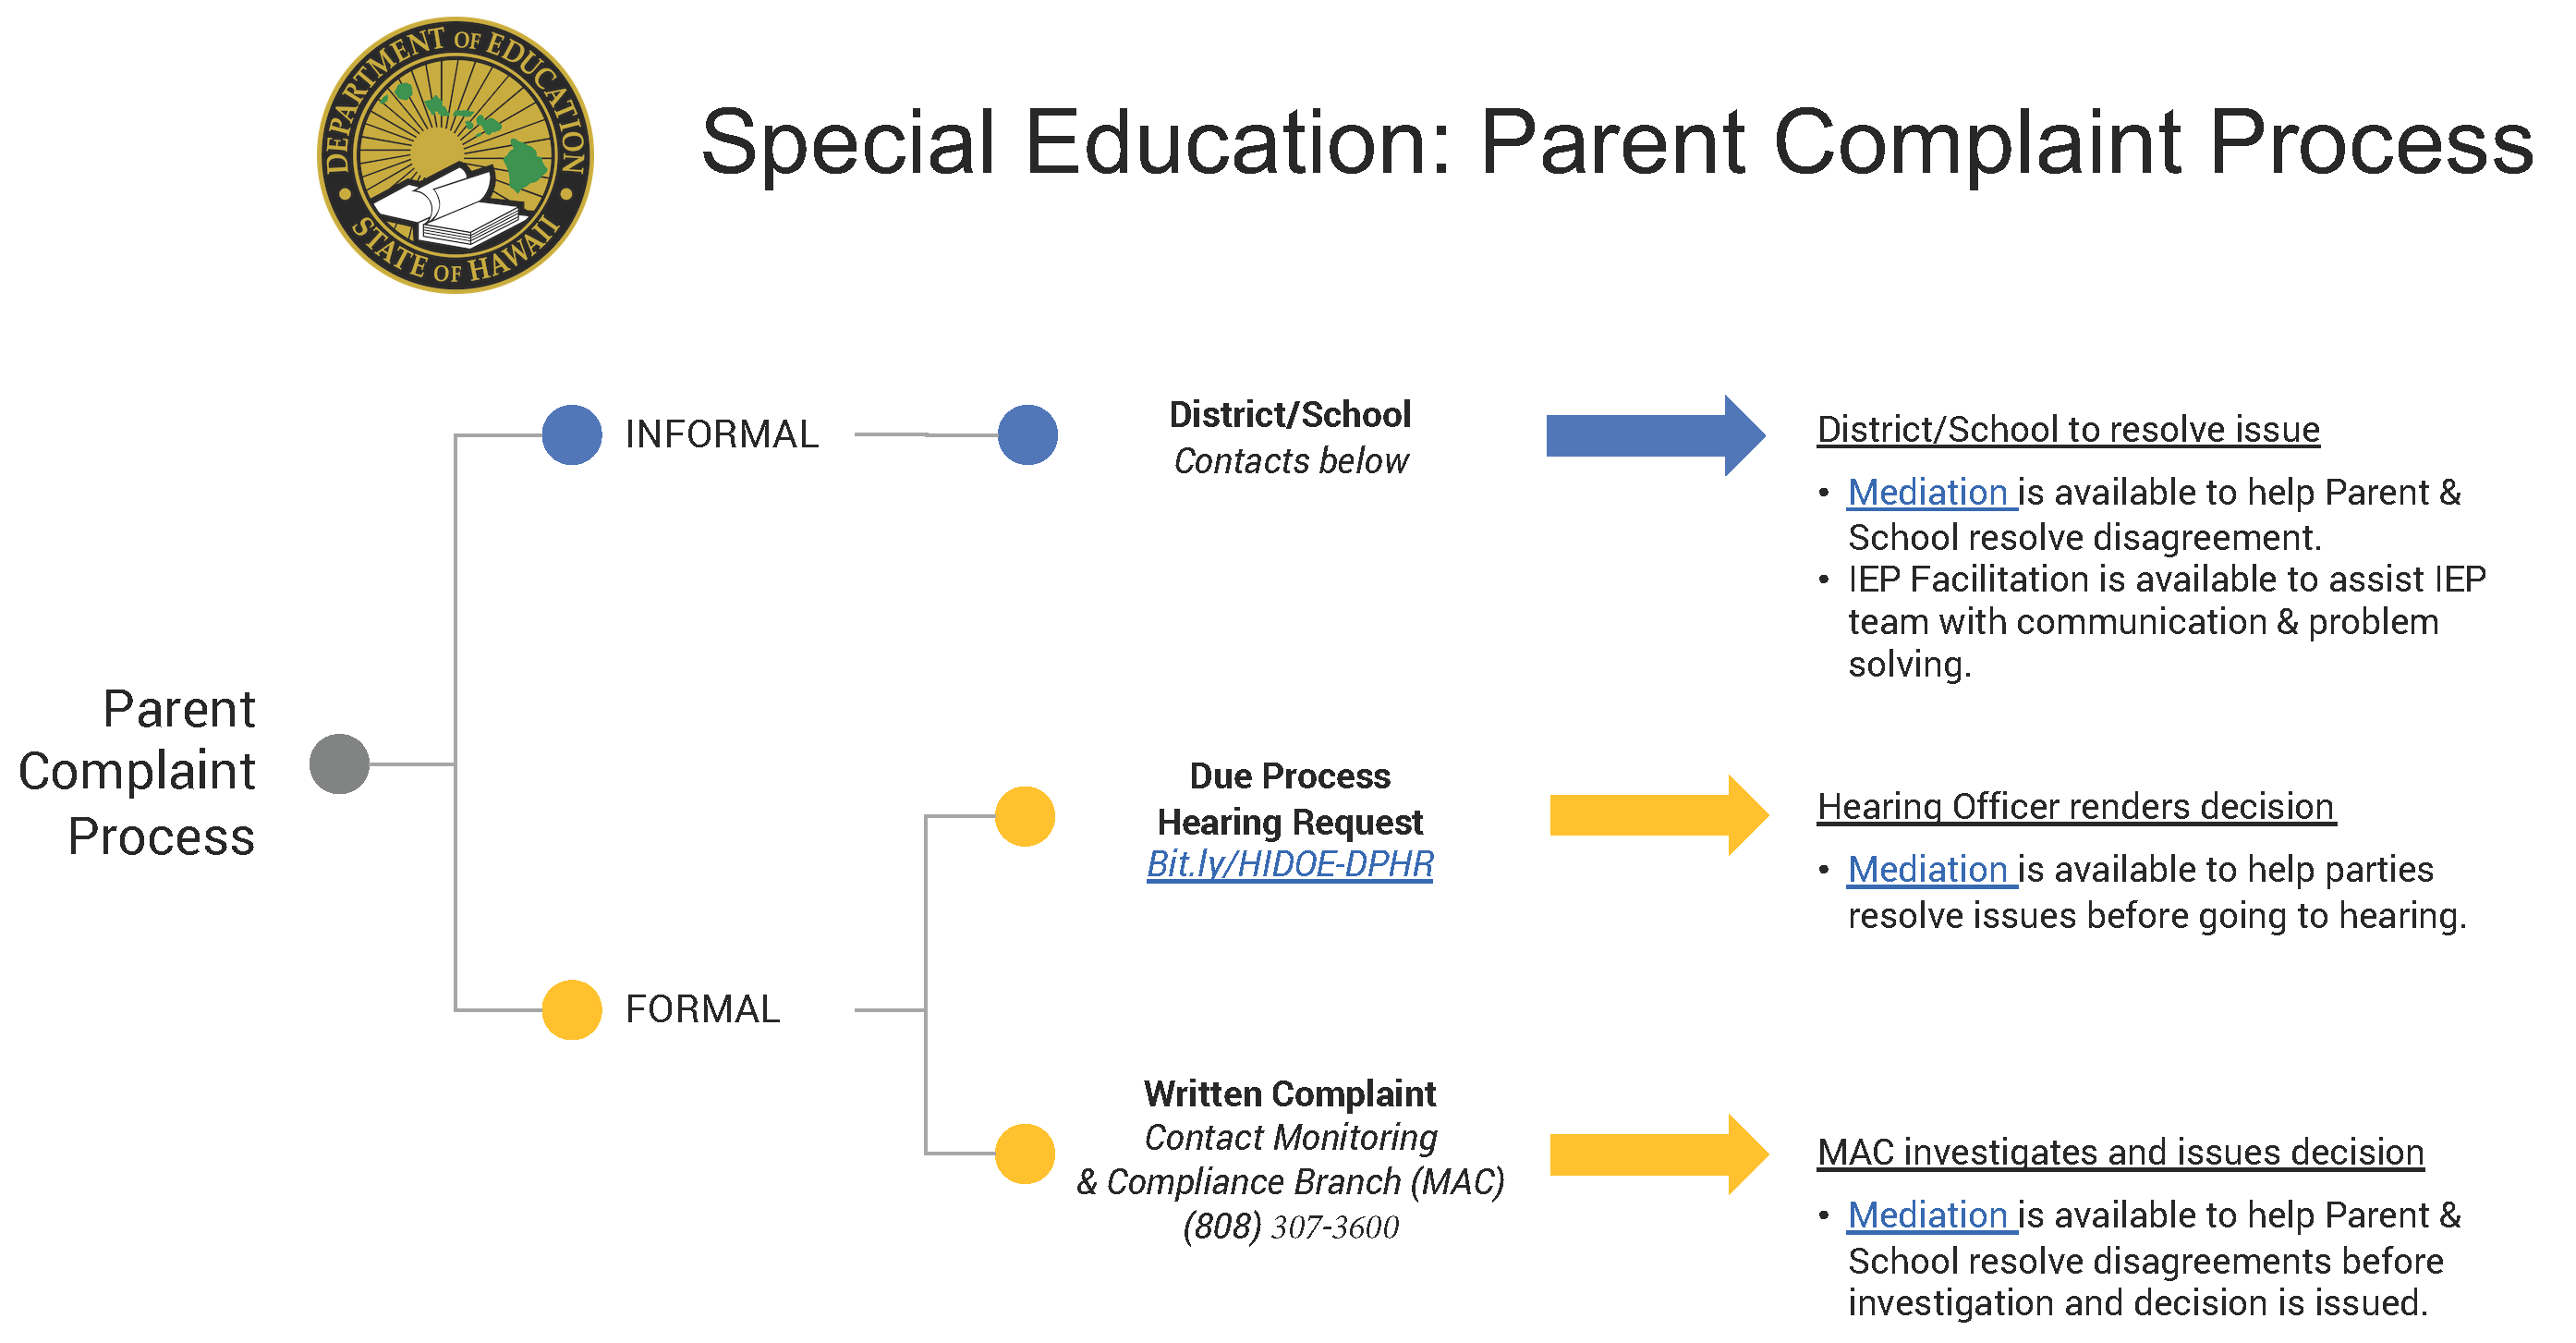 Special Education Parent Complaint Process